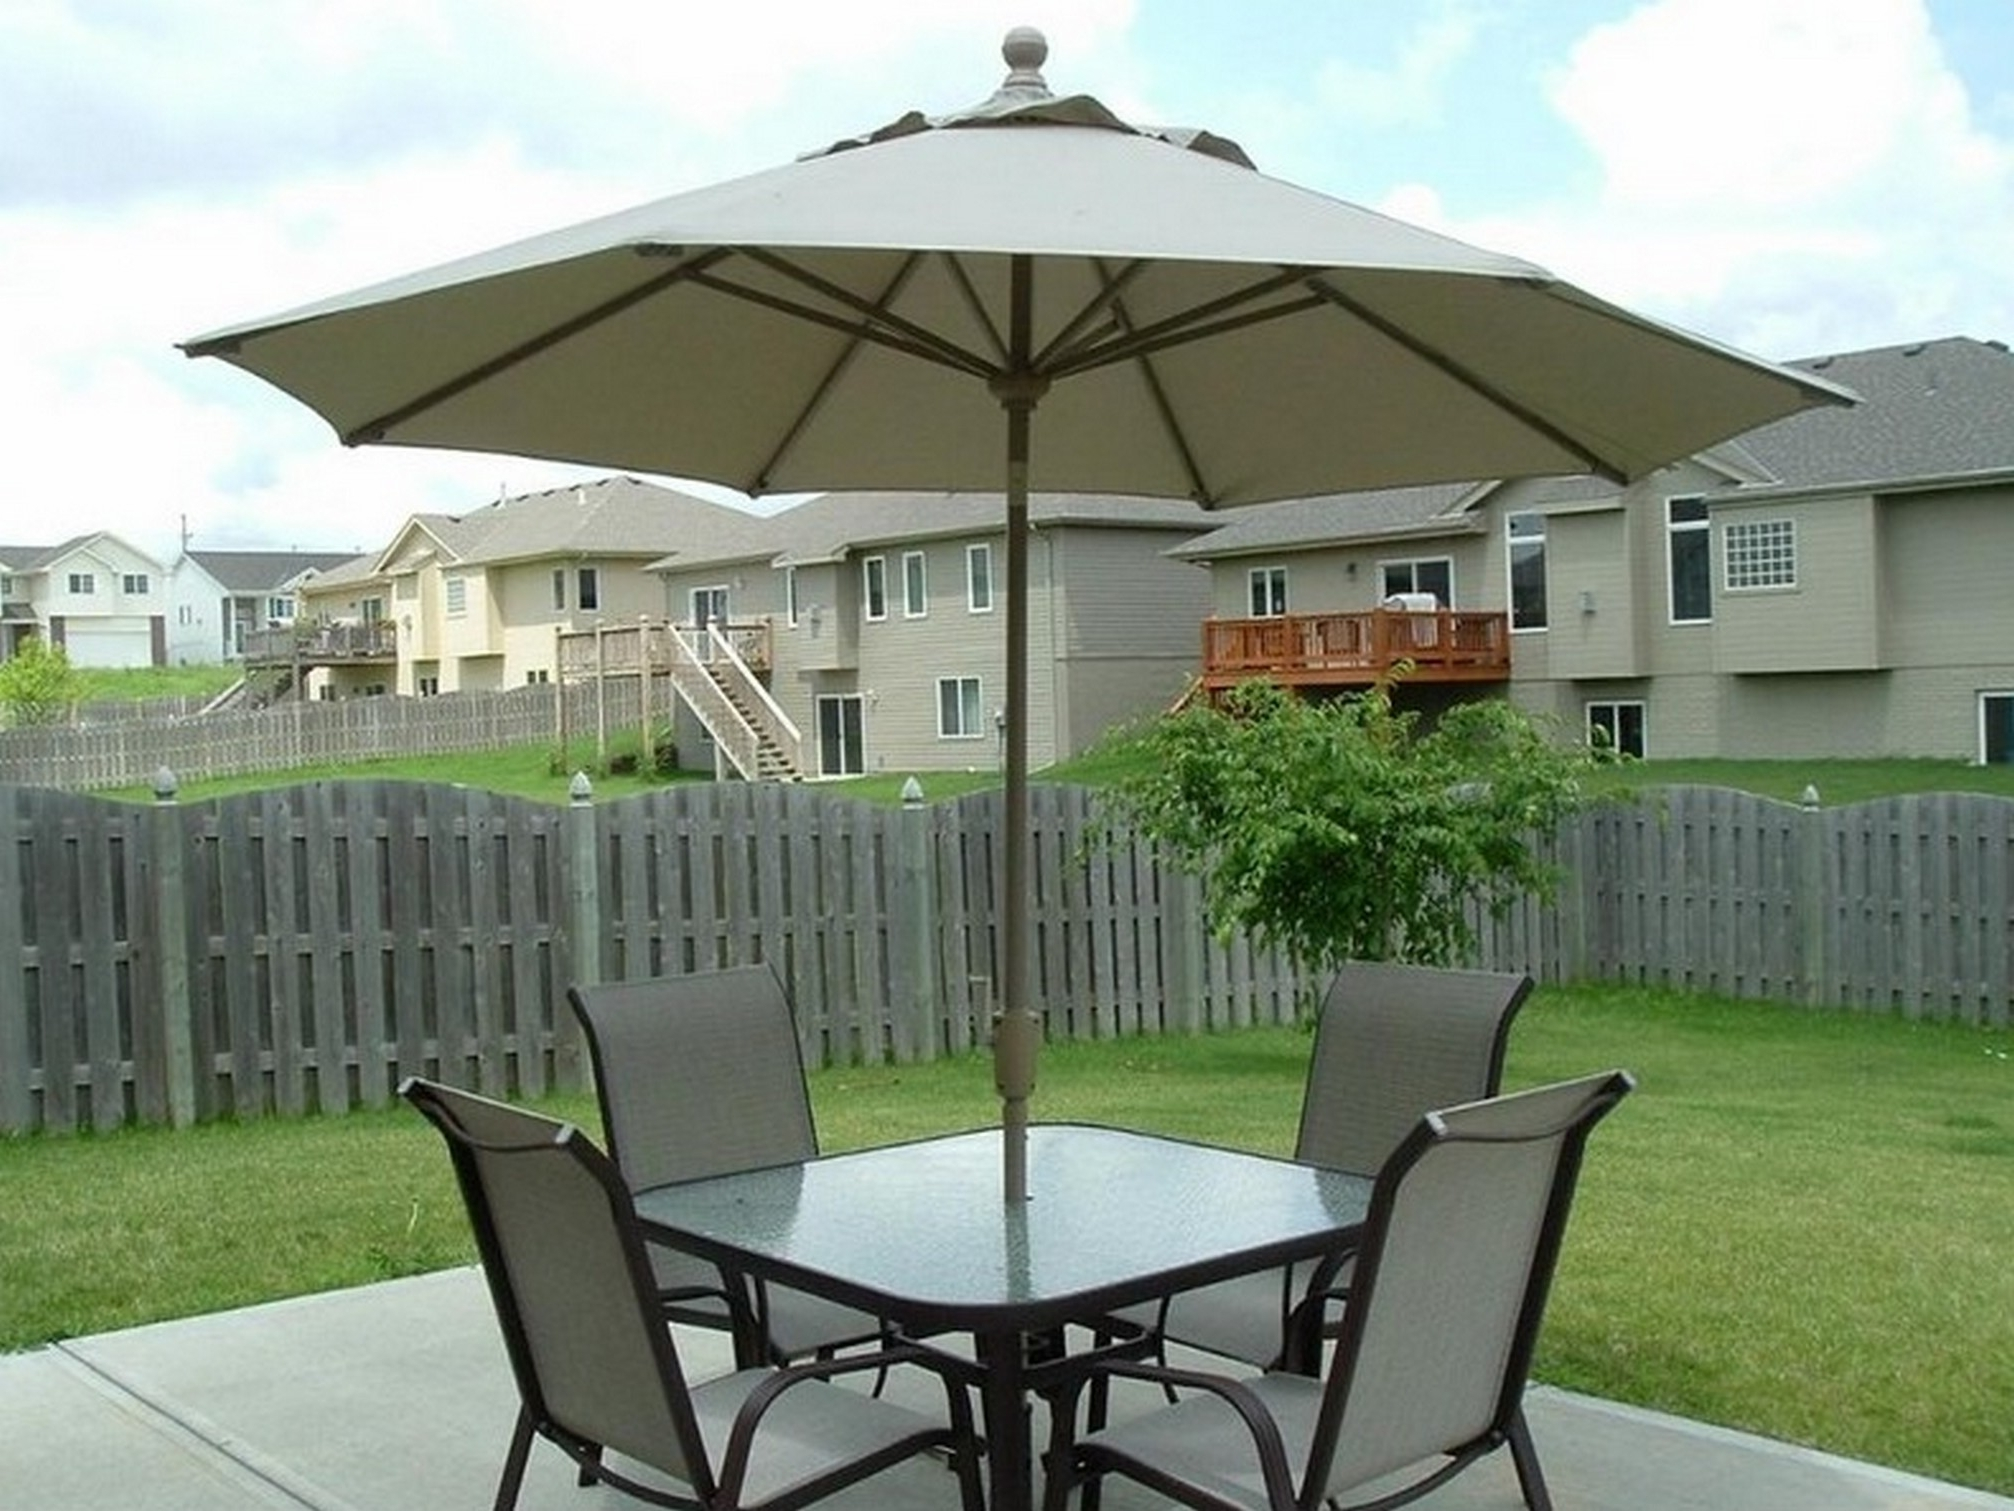 Patio Umbrellas For Tables For Well Known Patio: Astounding Patio Table And Chairs With Umbrella Outdoor (View 9 of 20)